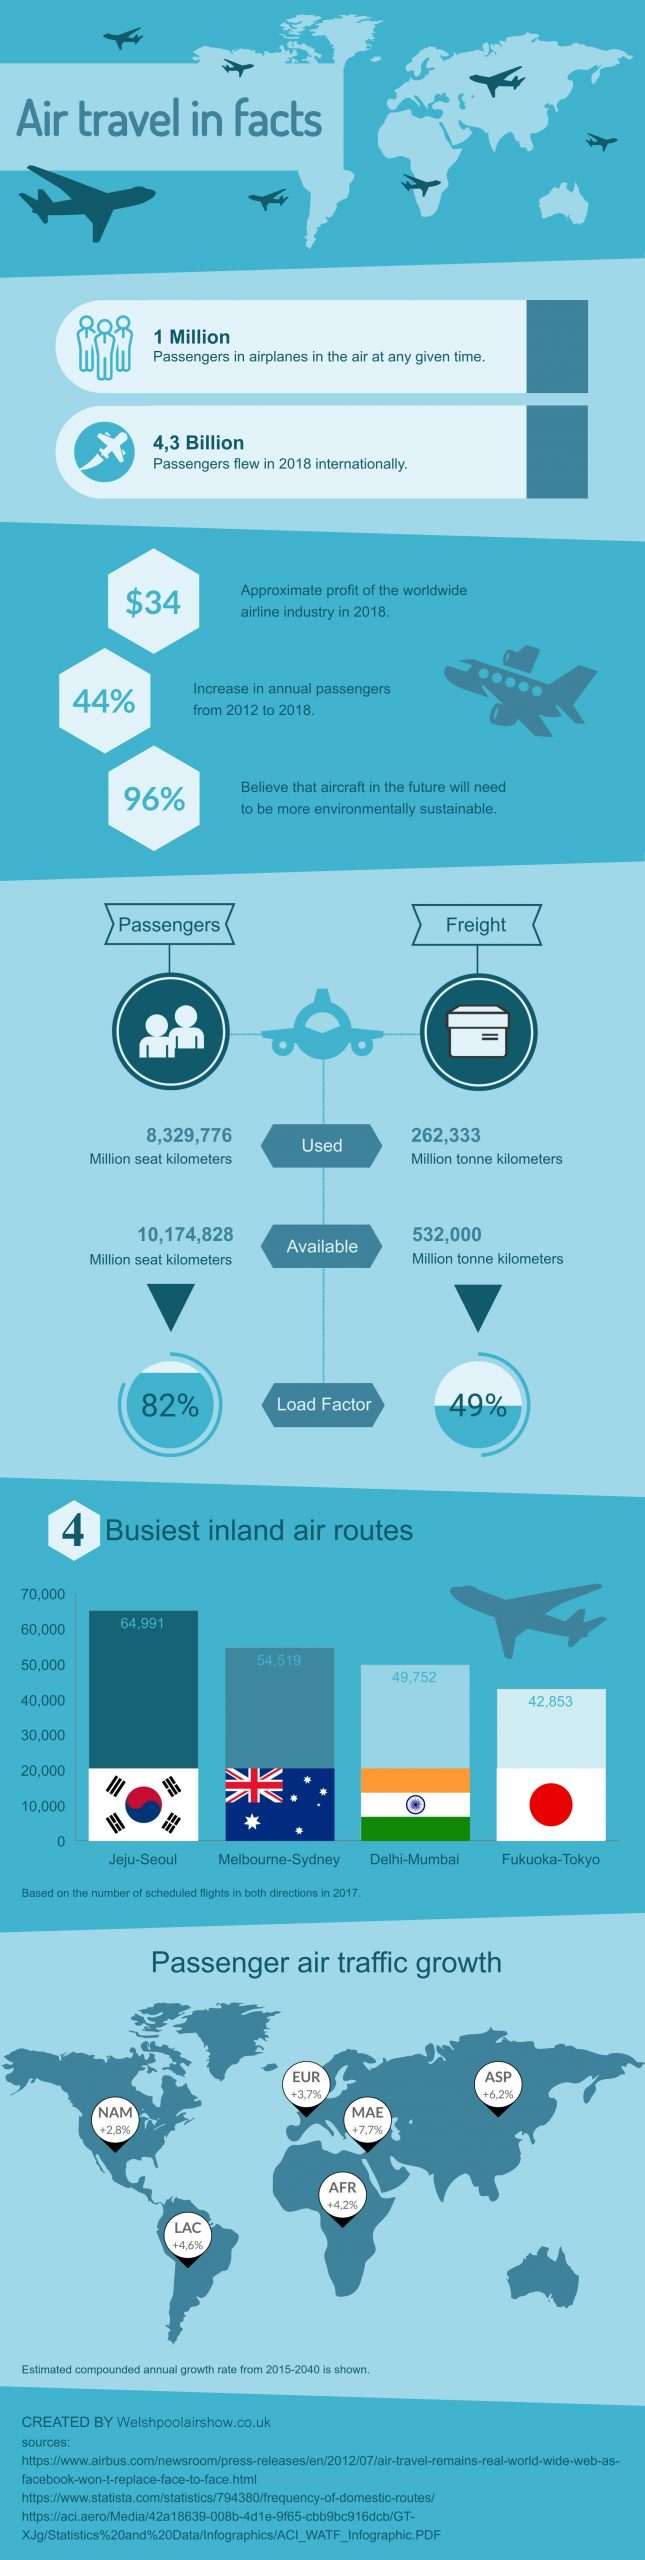 Air travel in facts infographic